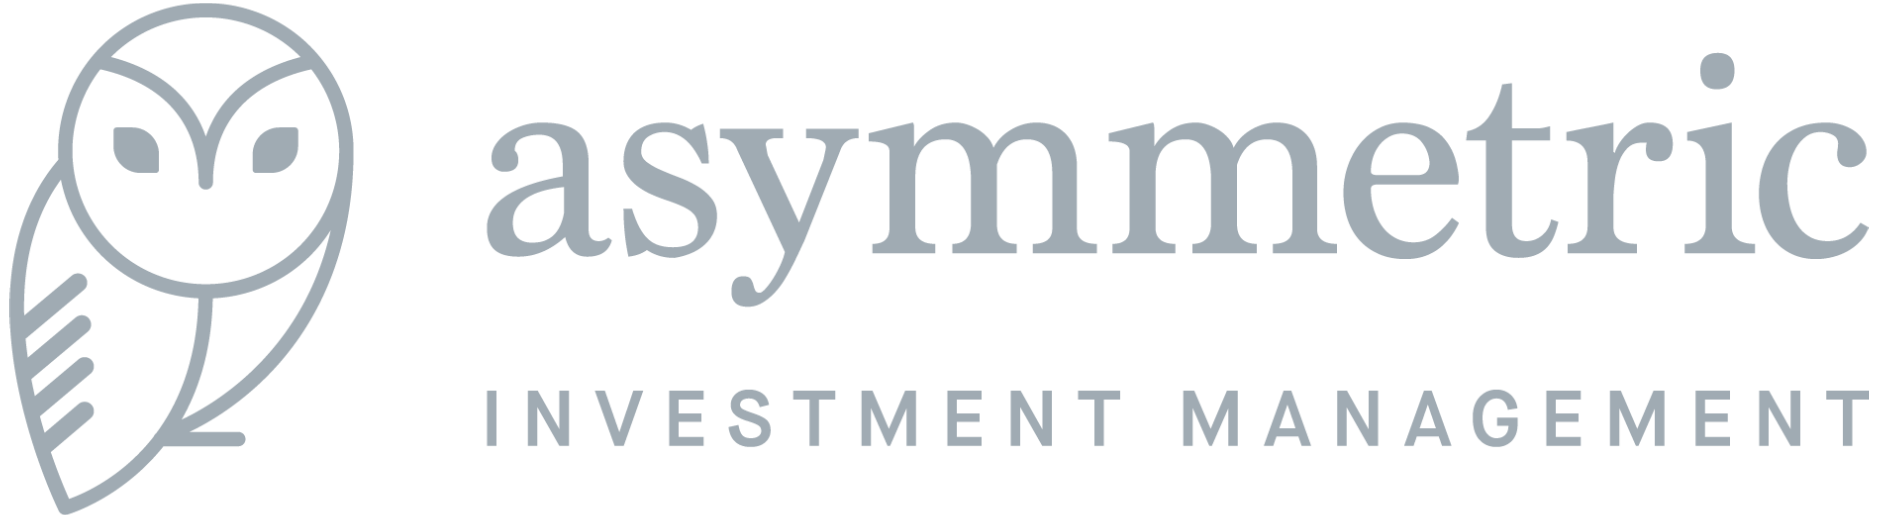 Asymmetric Investment Management